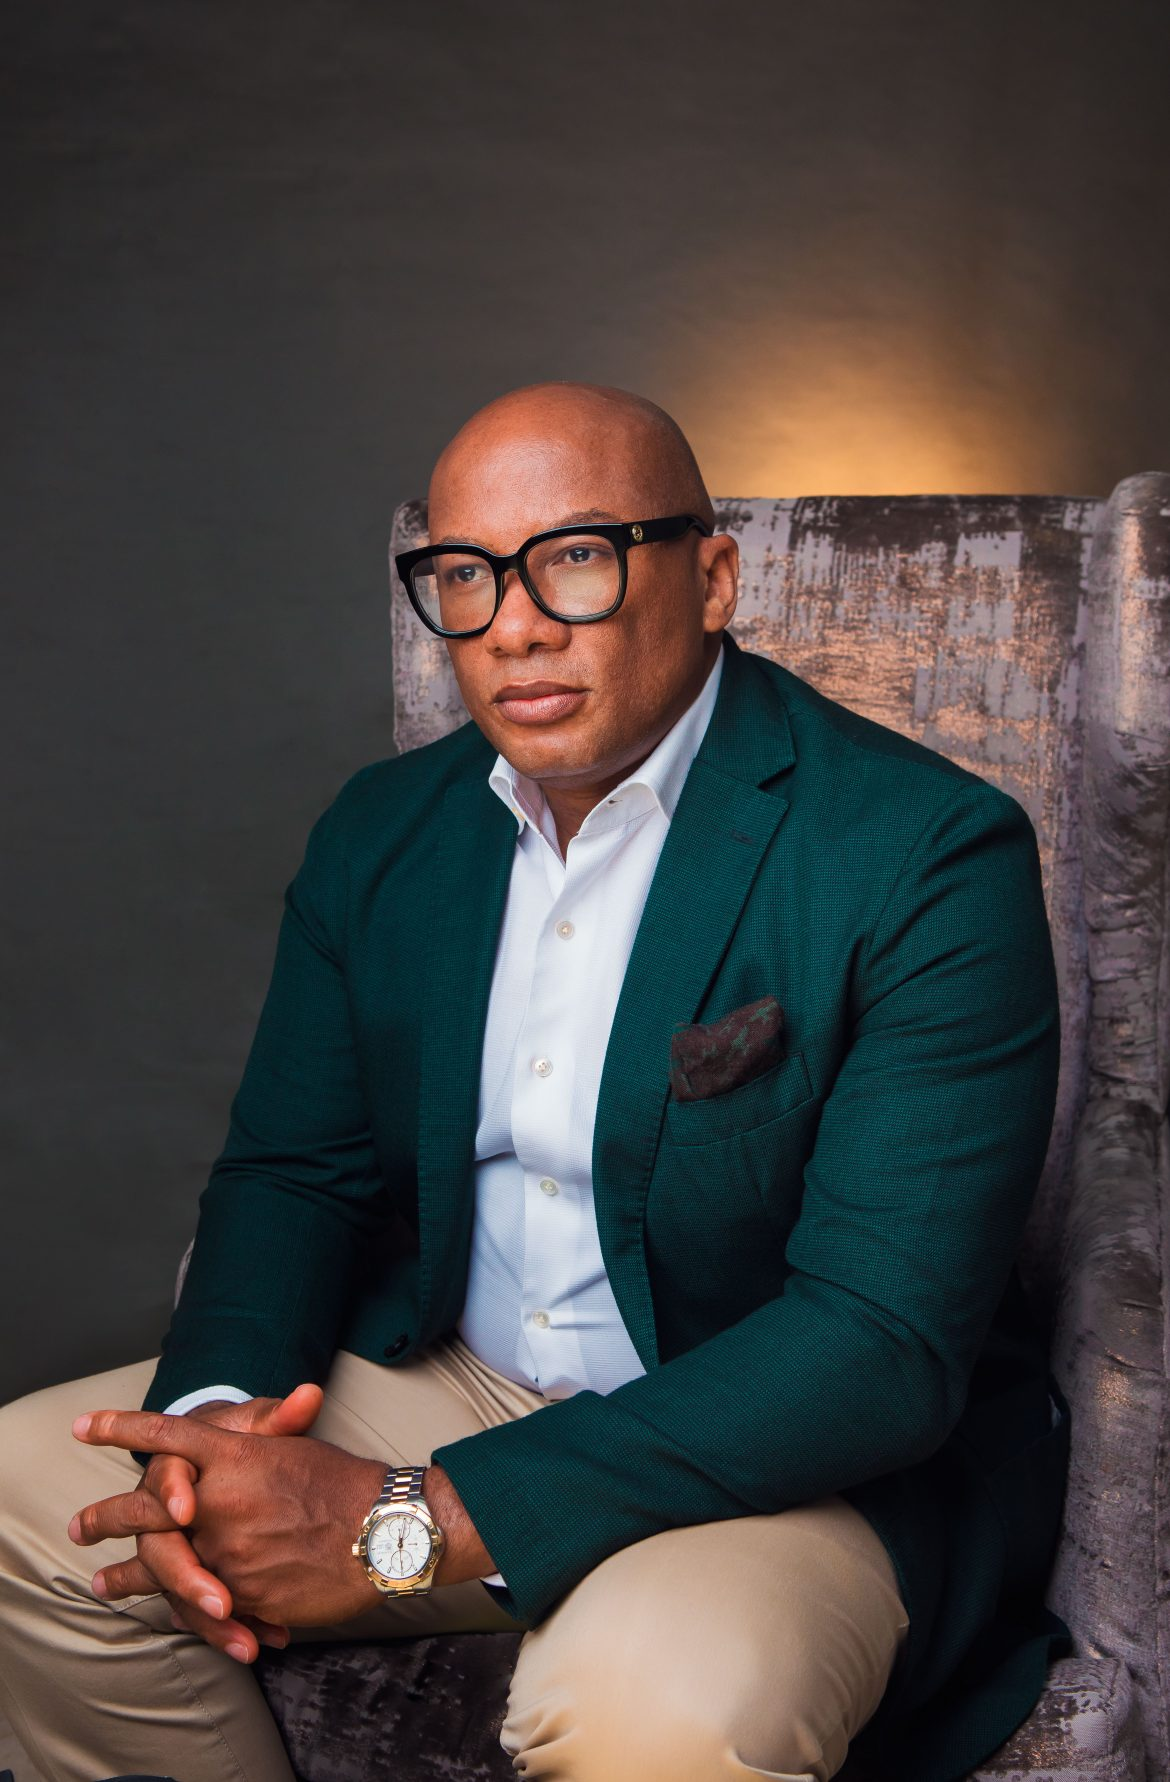 Mitchell Elegbe: Celebrating a visionary who transformed electronic payments In Nigeria